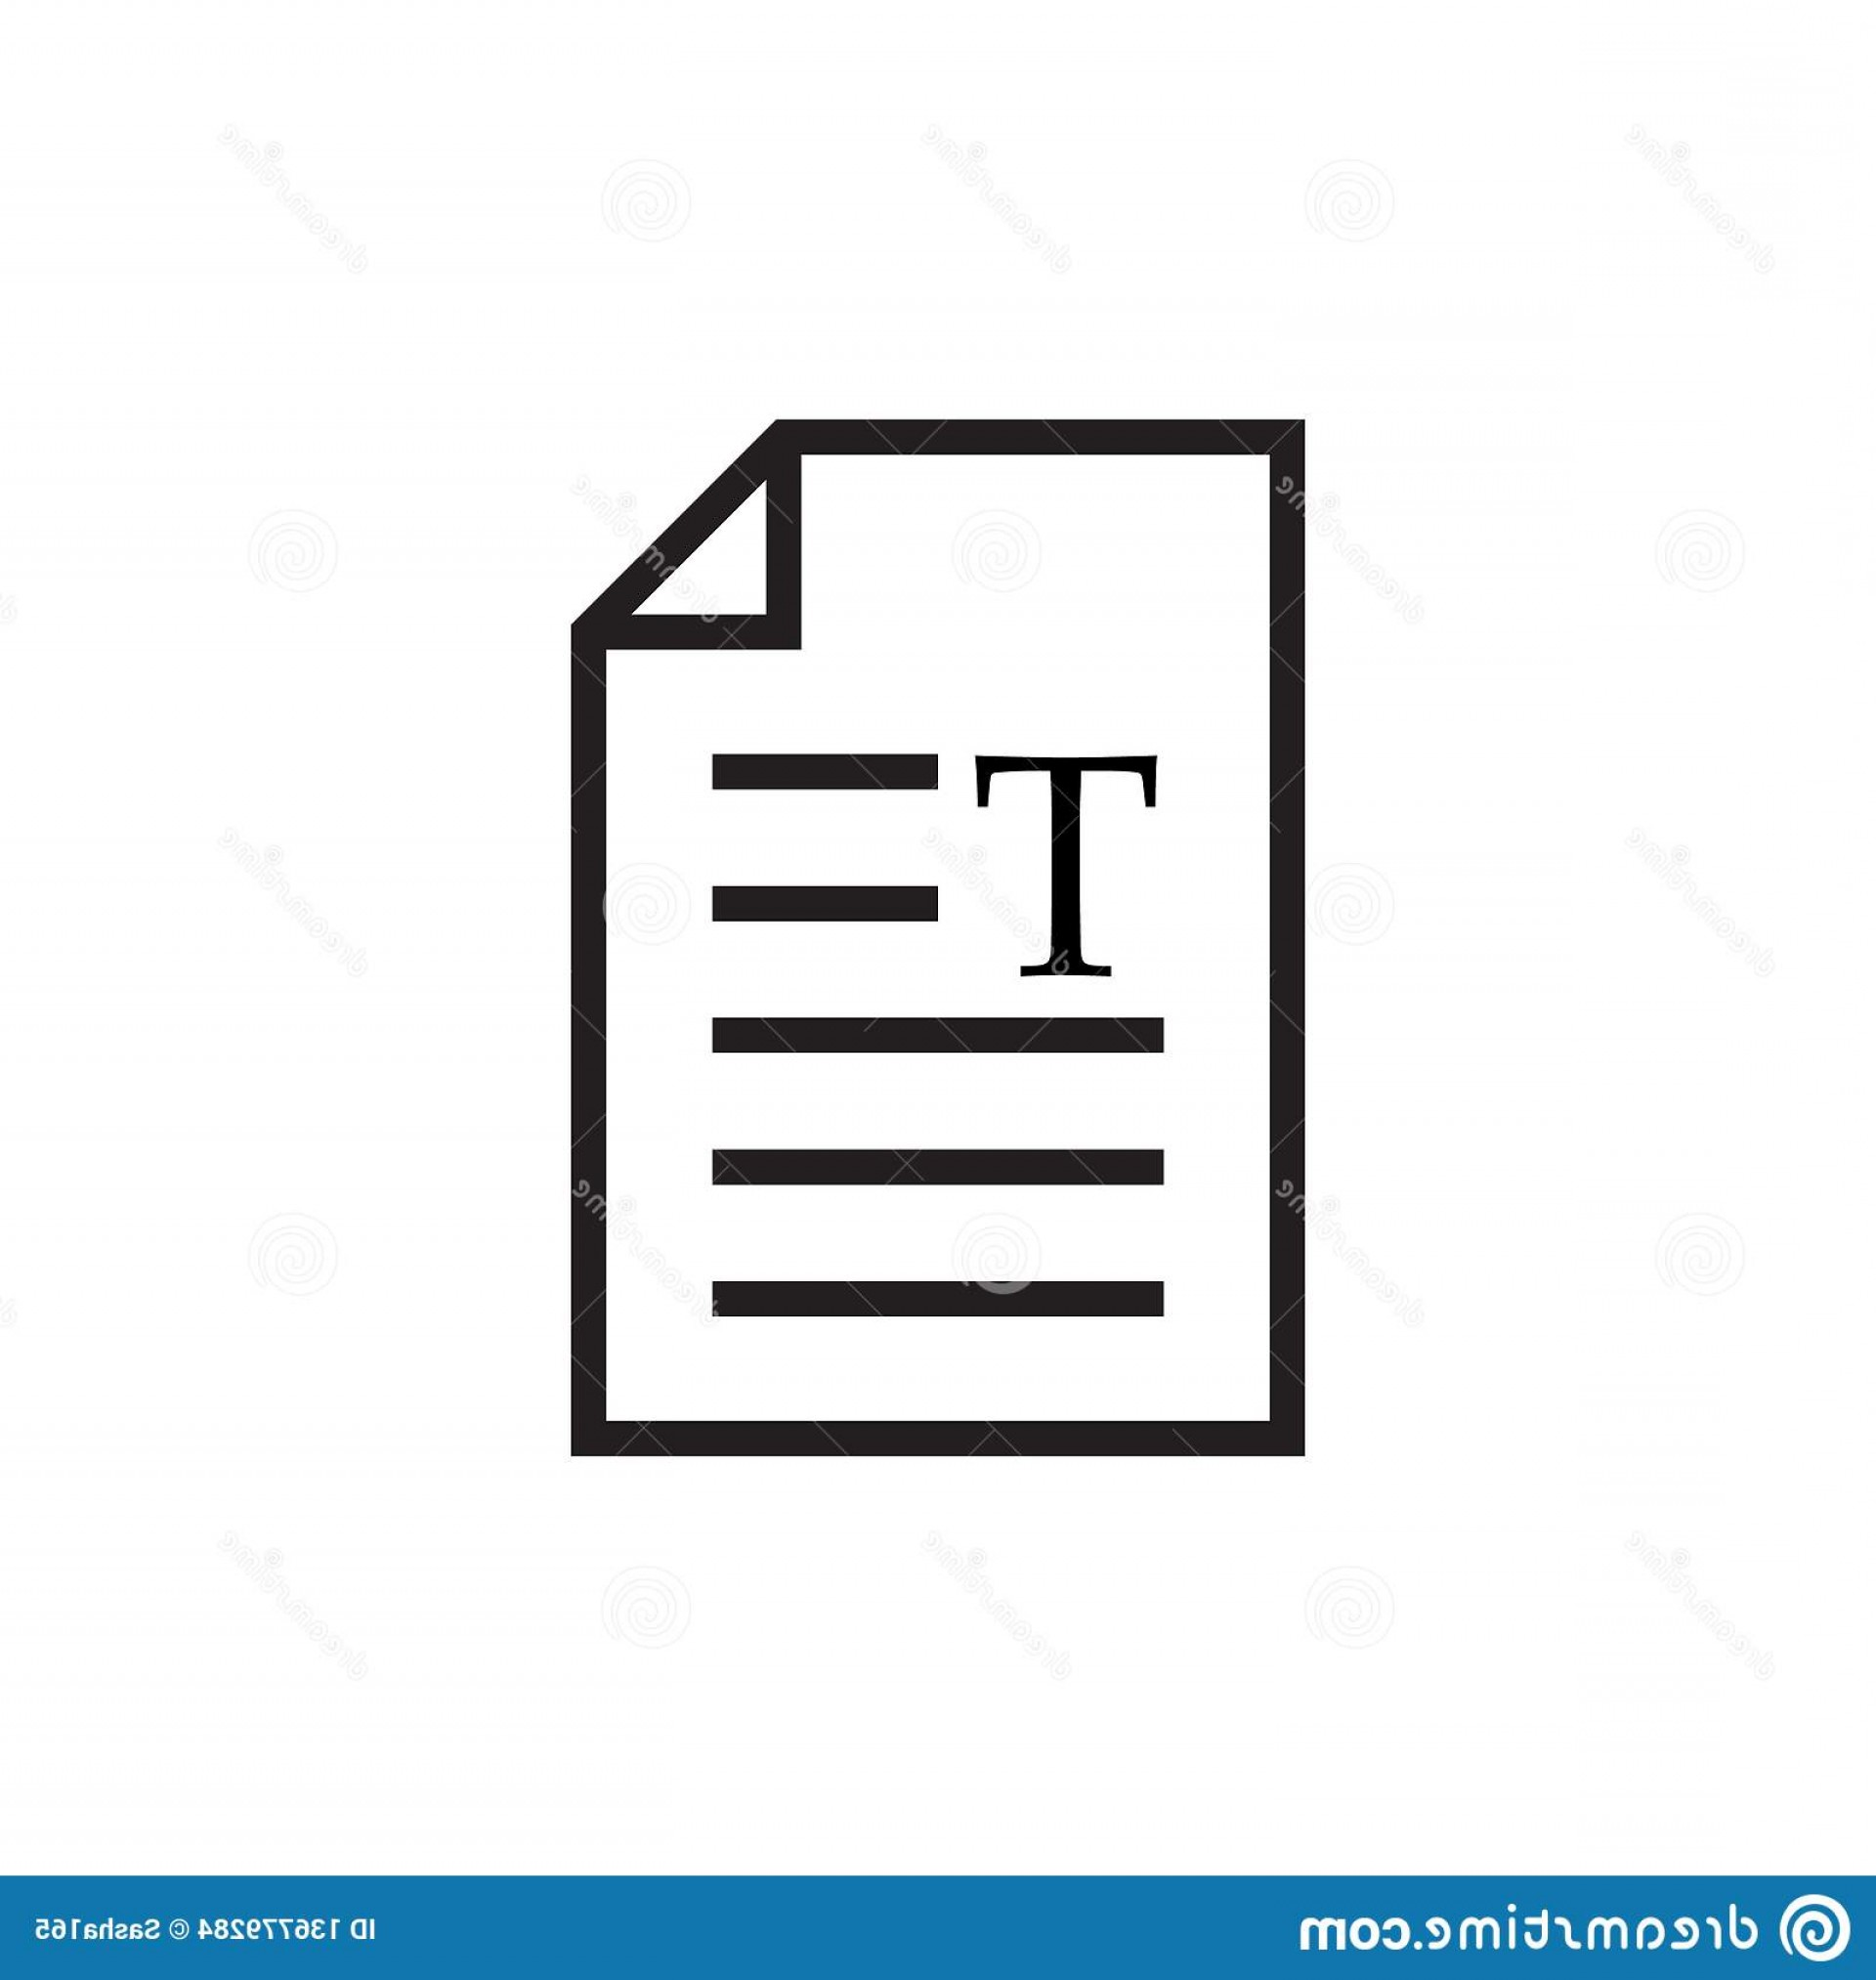 File Formats Vector Artwork: Page Letter T Text Document Icon Web Symbol Office File Format Vector Illustration Isolated White Background Image